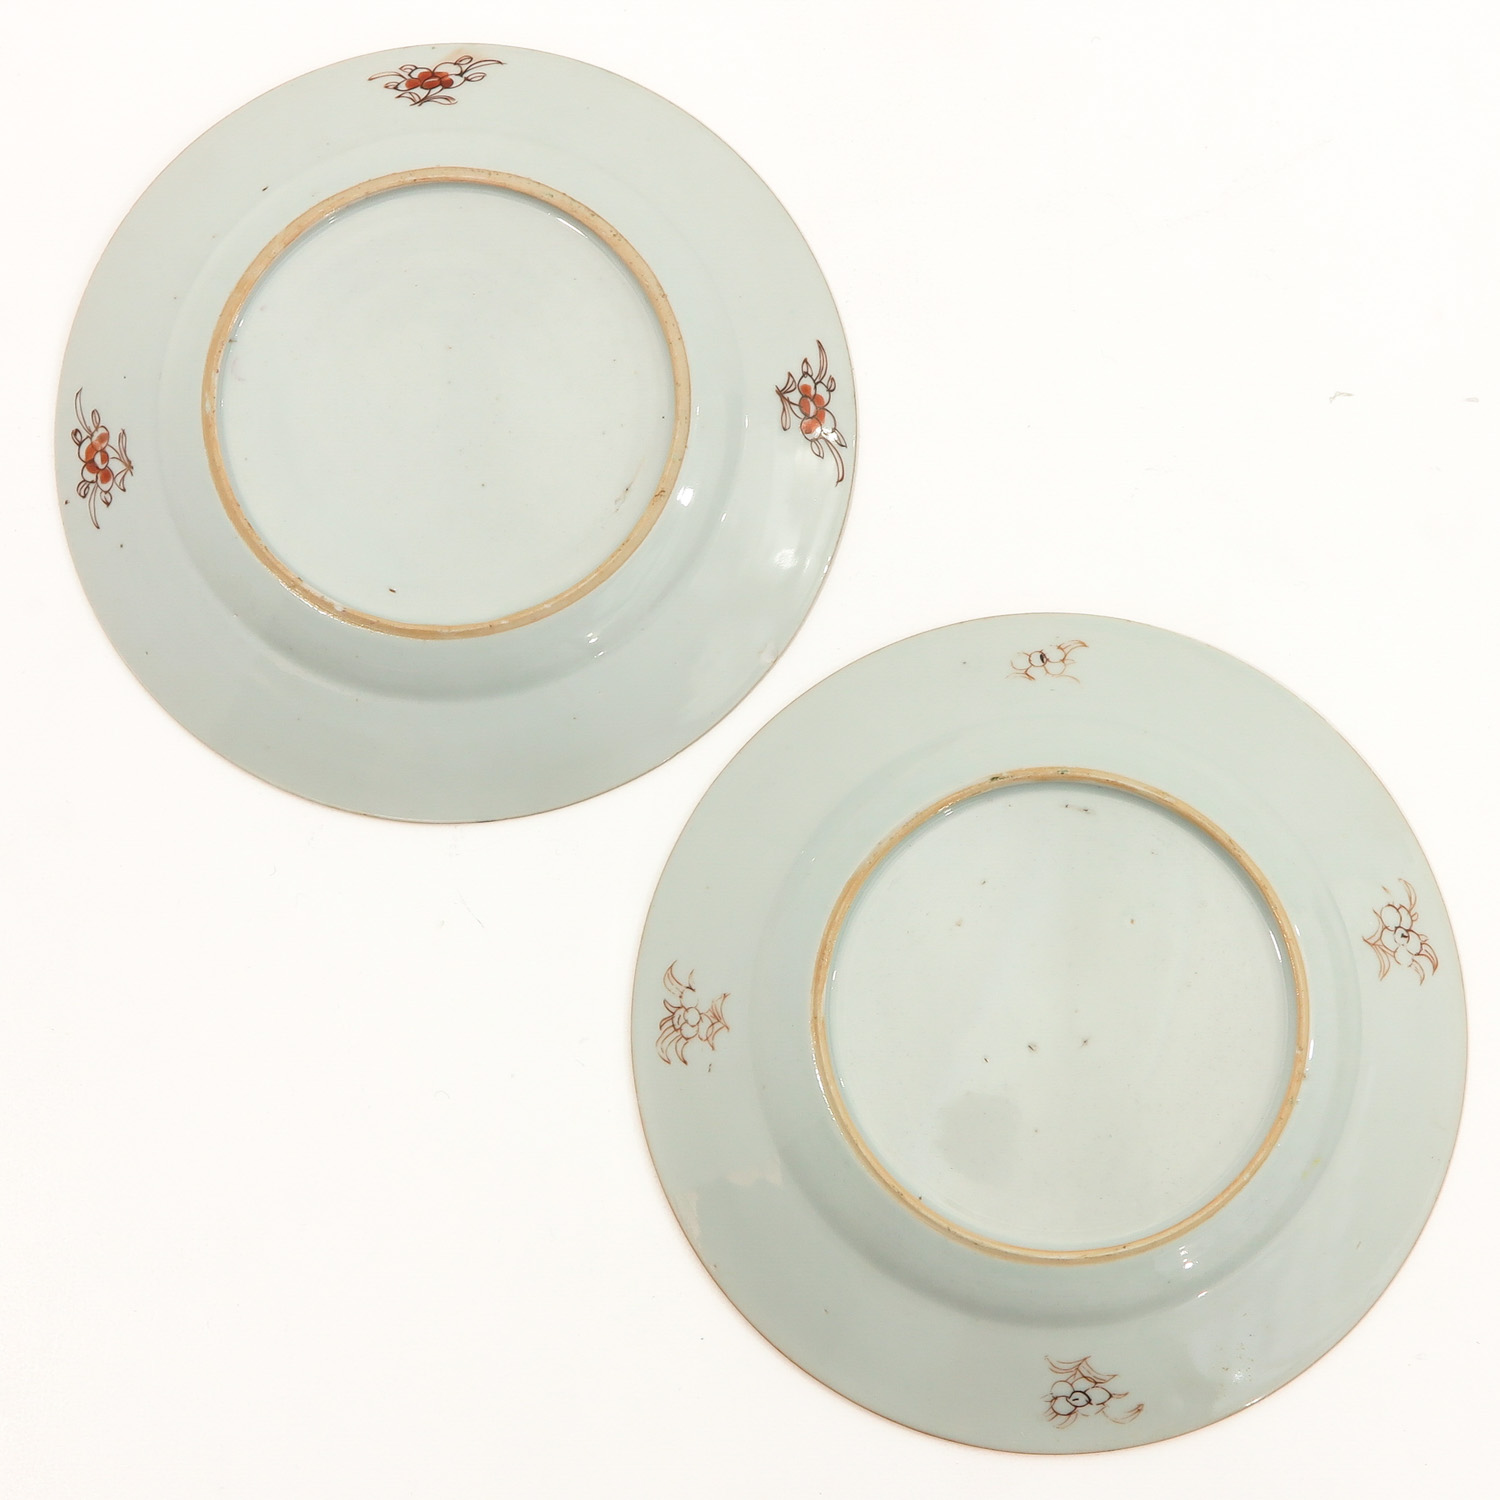 A Series of 4 Famille Rose Plates - Image 4 of 9